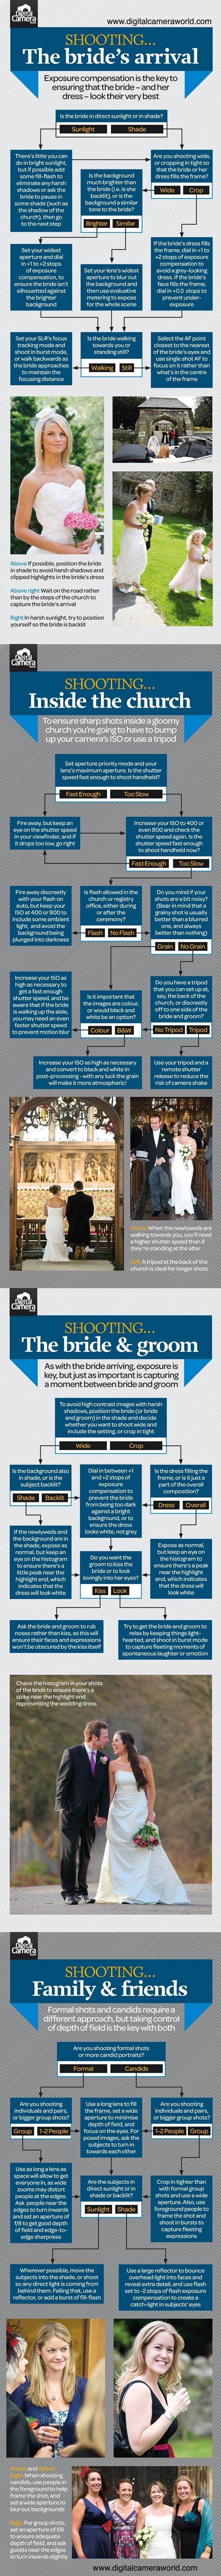 Free wedding photography cheat sheet. Tips for shooting the bride's arrival, the bride and groom together, inside the church and candids of guests.